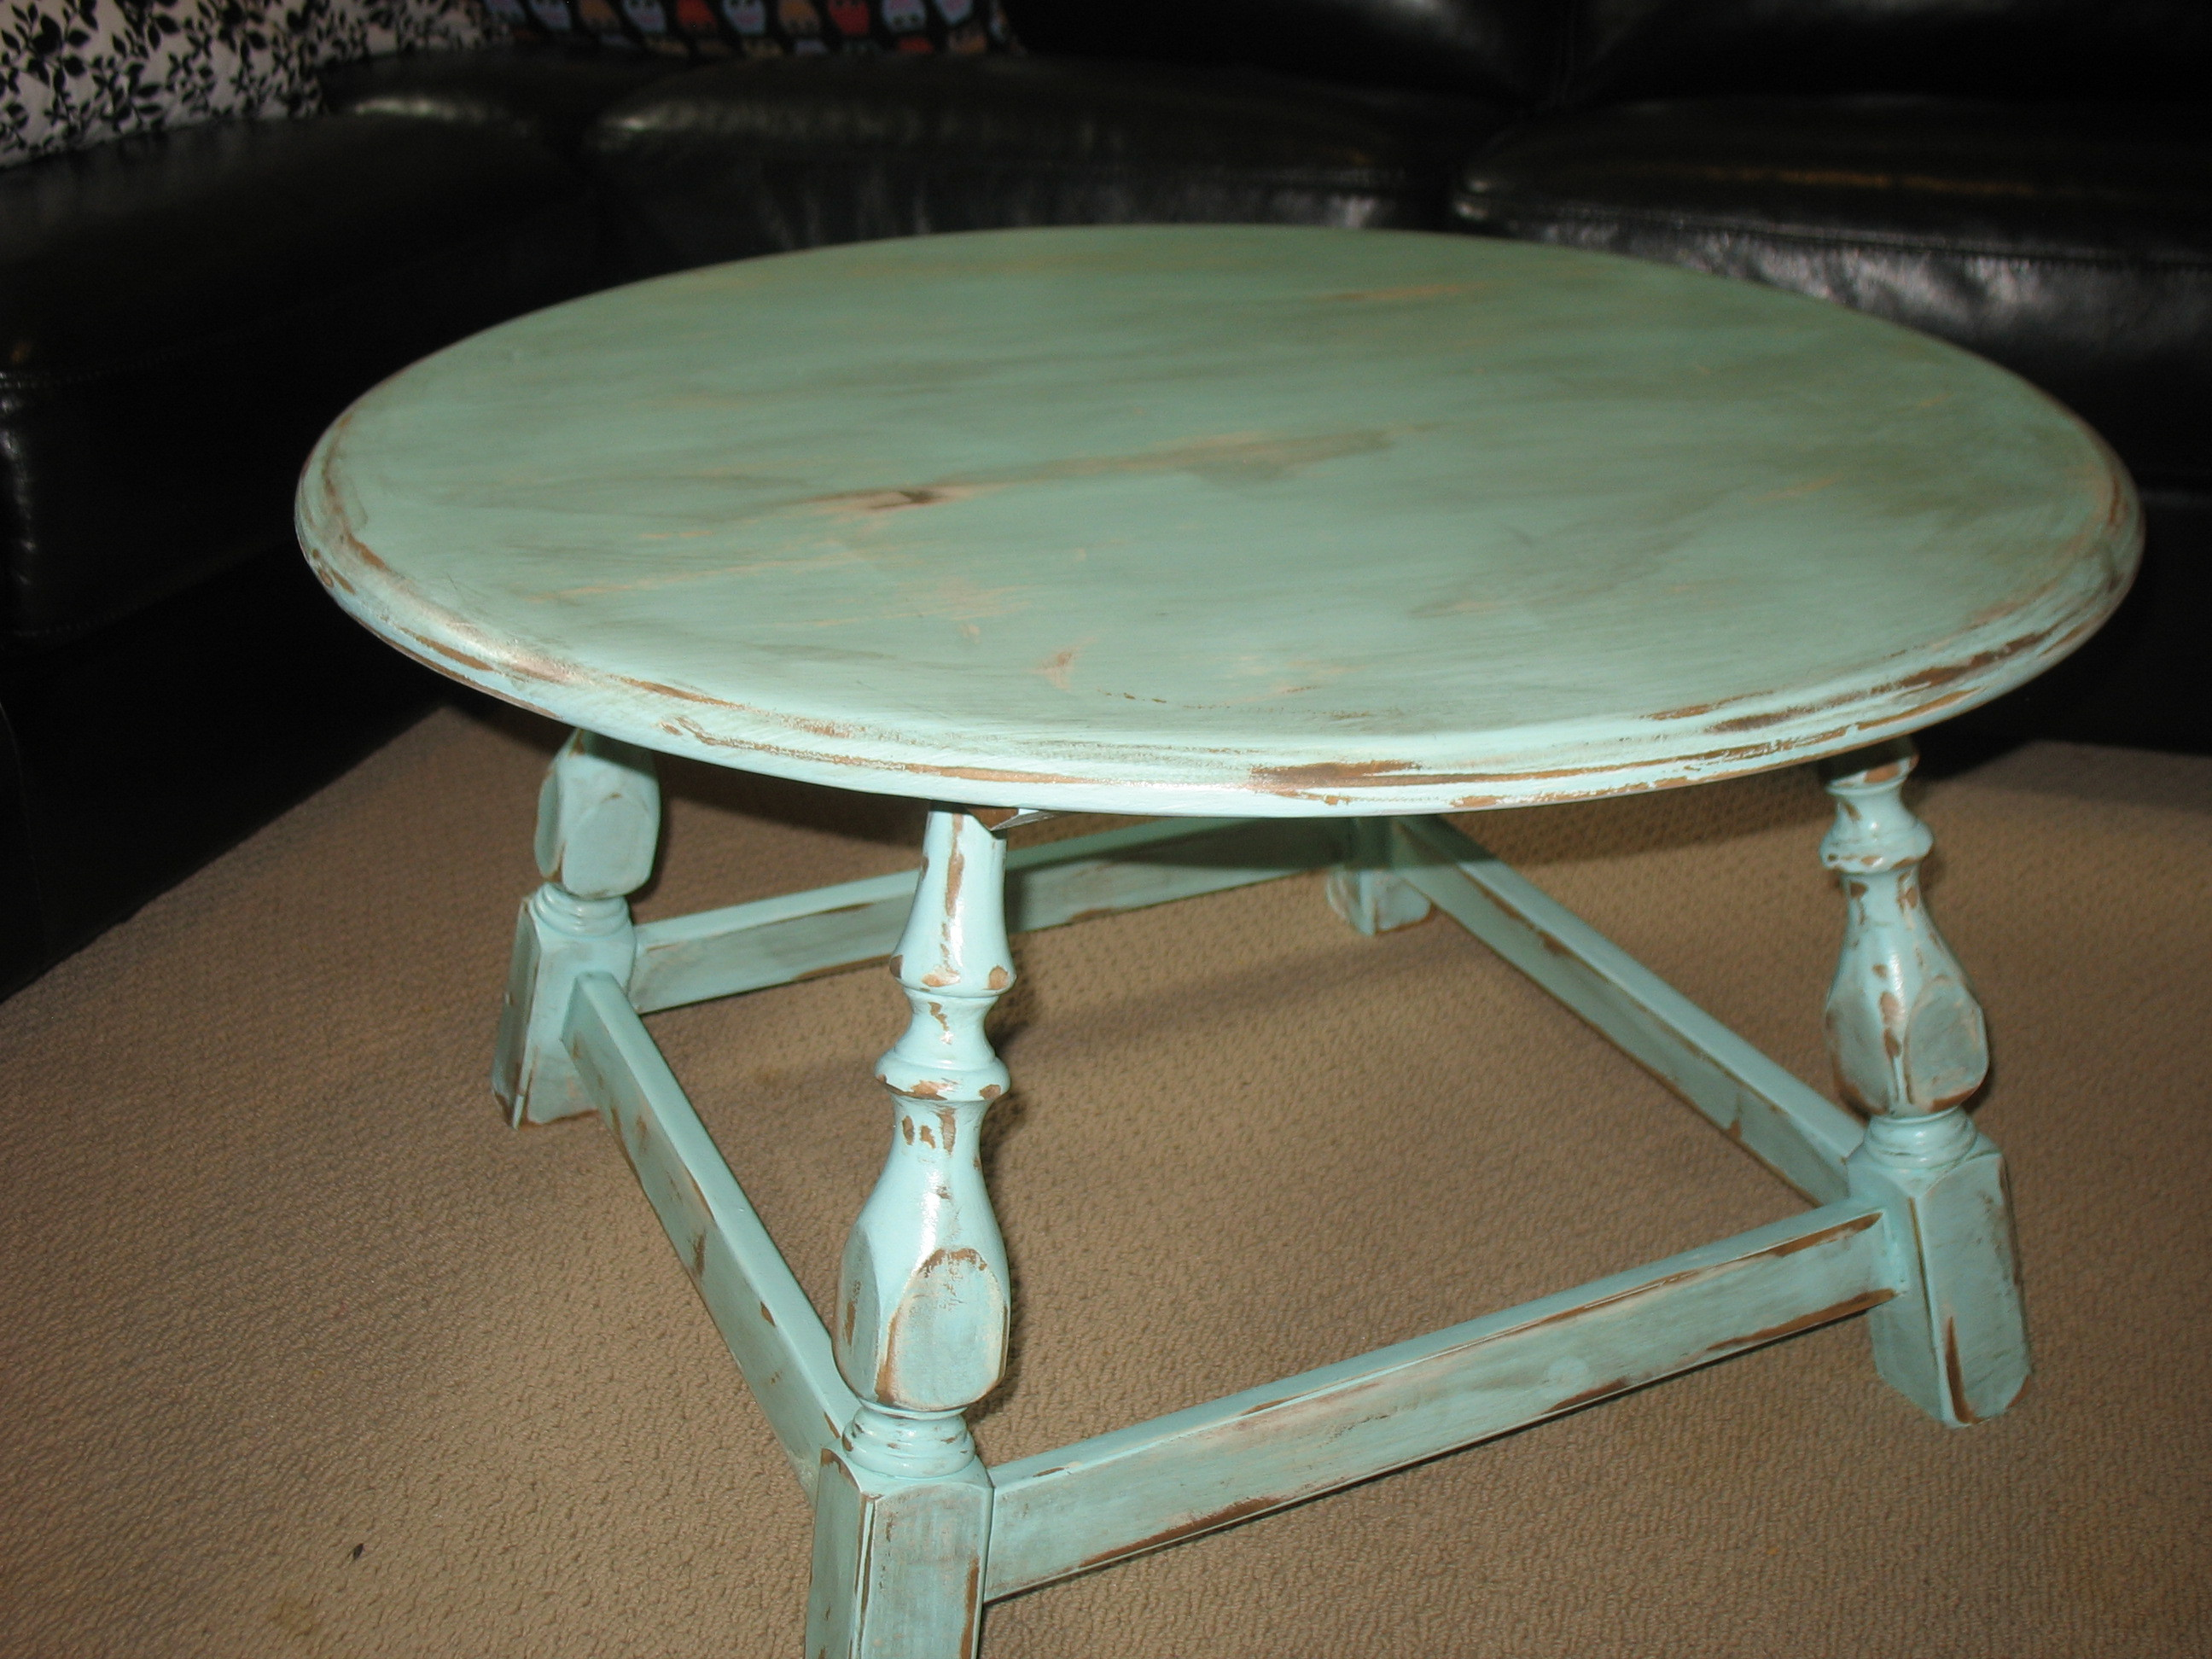 Distressed coffee table design images photos pictures for Round weathered coffee table